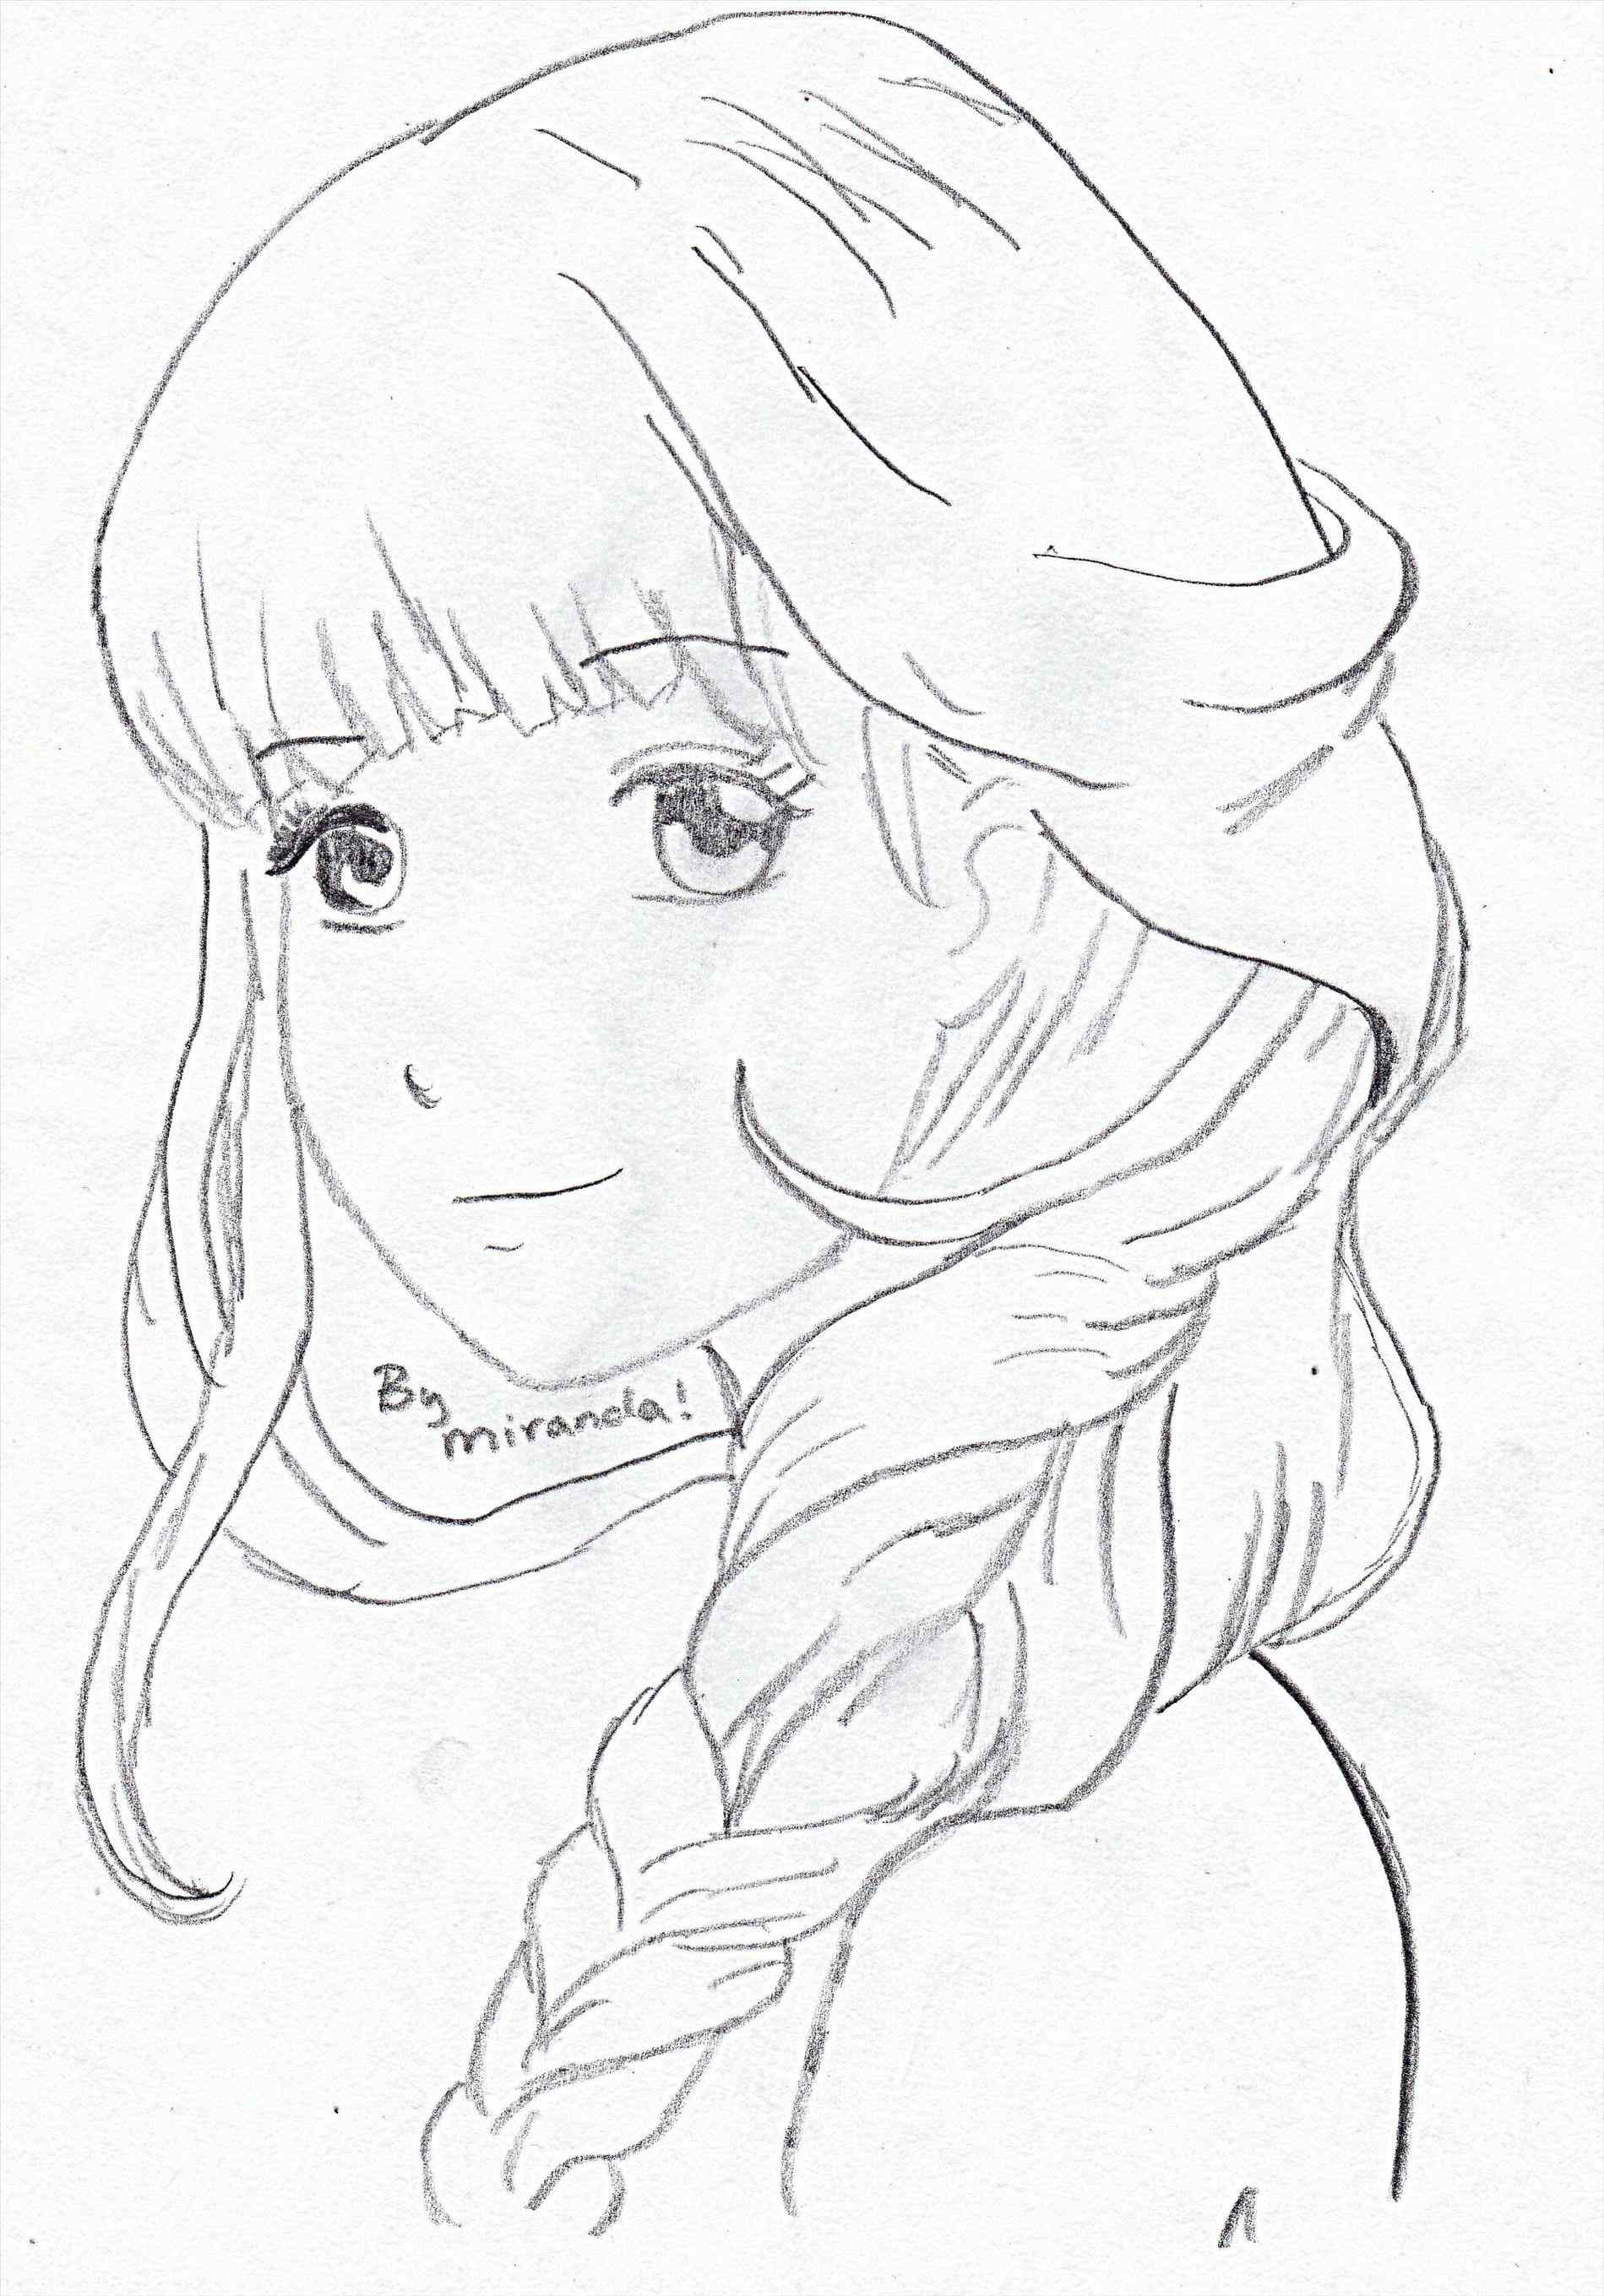 1899x2719 Manga Face Side View To Draw Anime Easier For Beginners Male Head